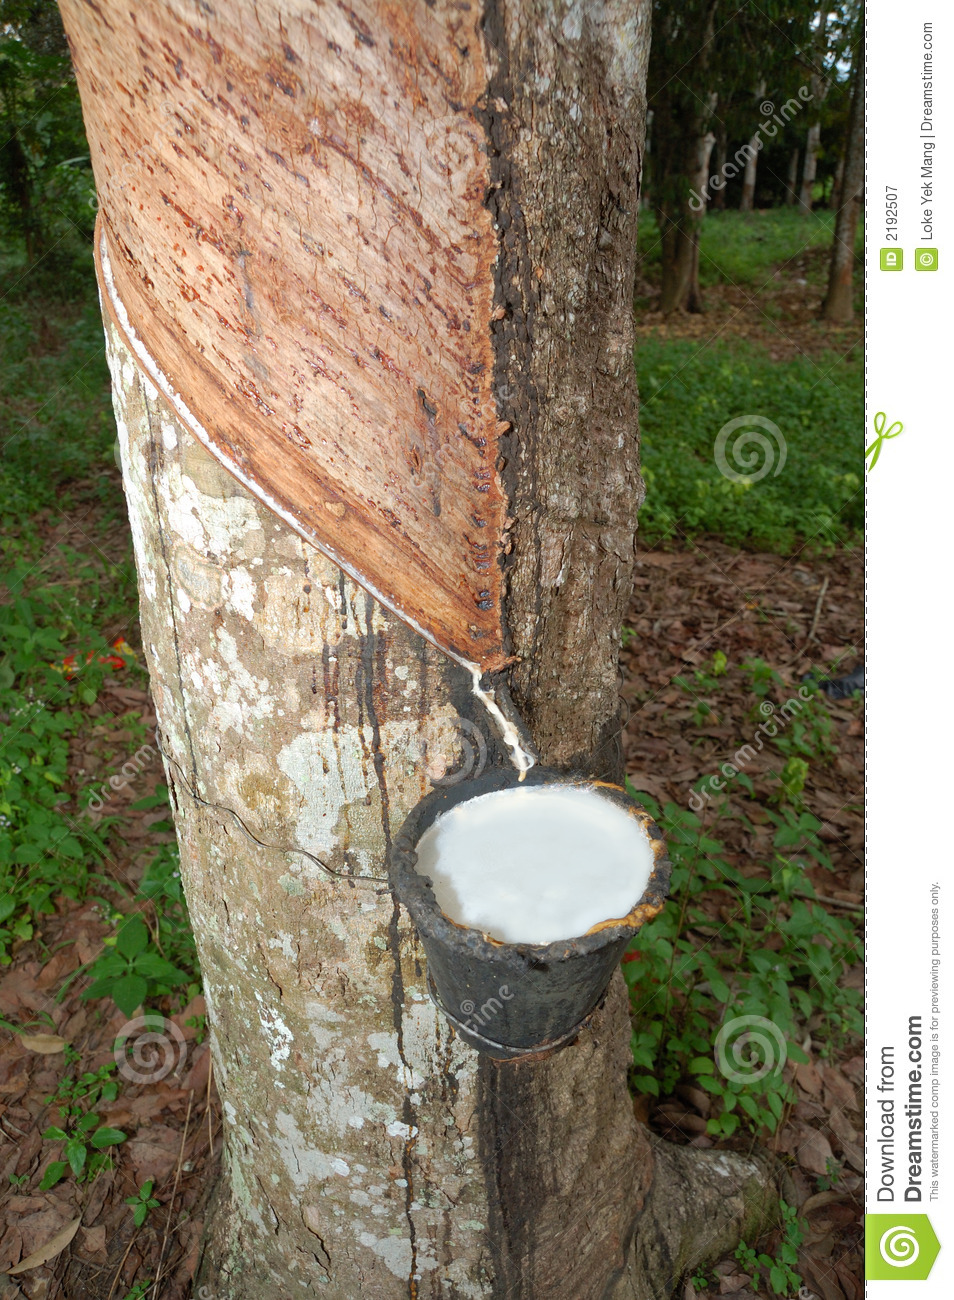 Rubber Natural Resource